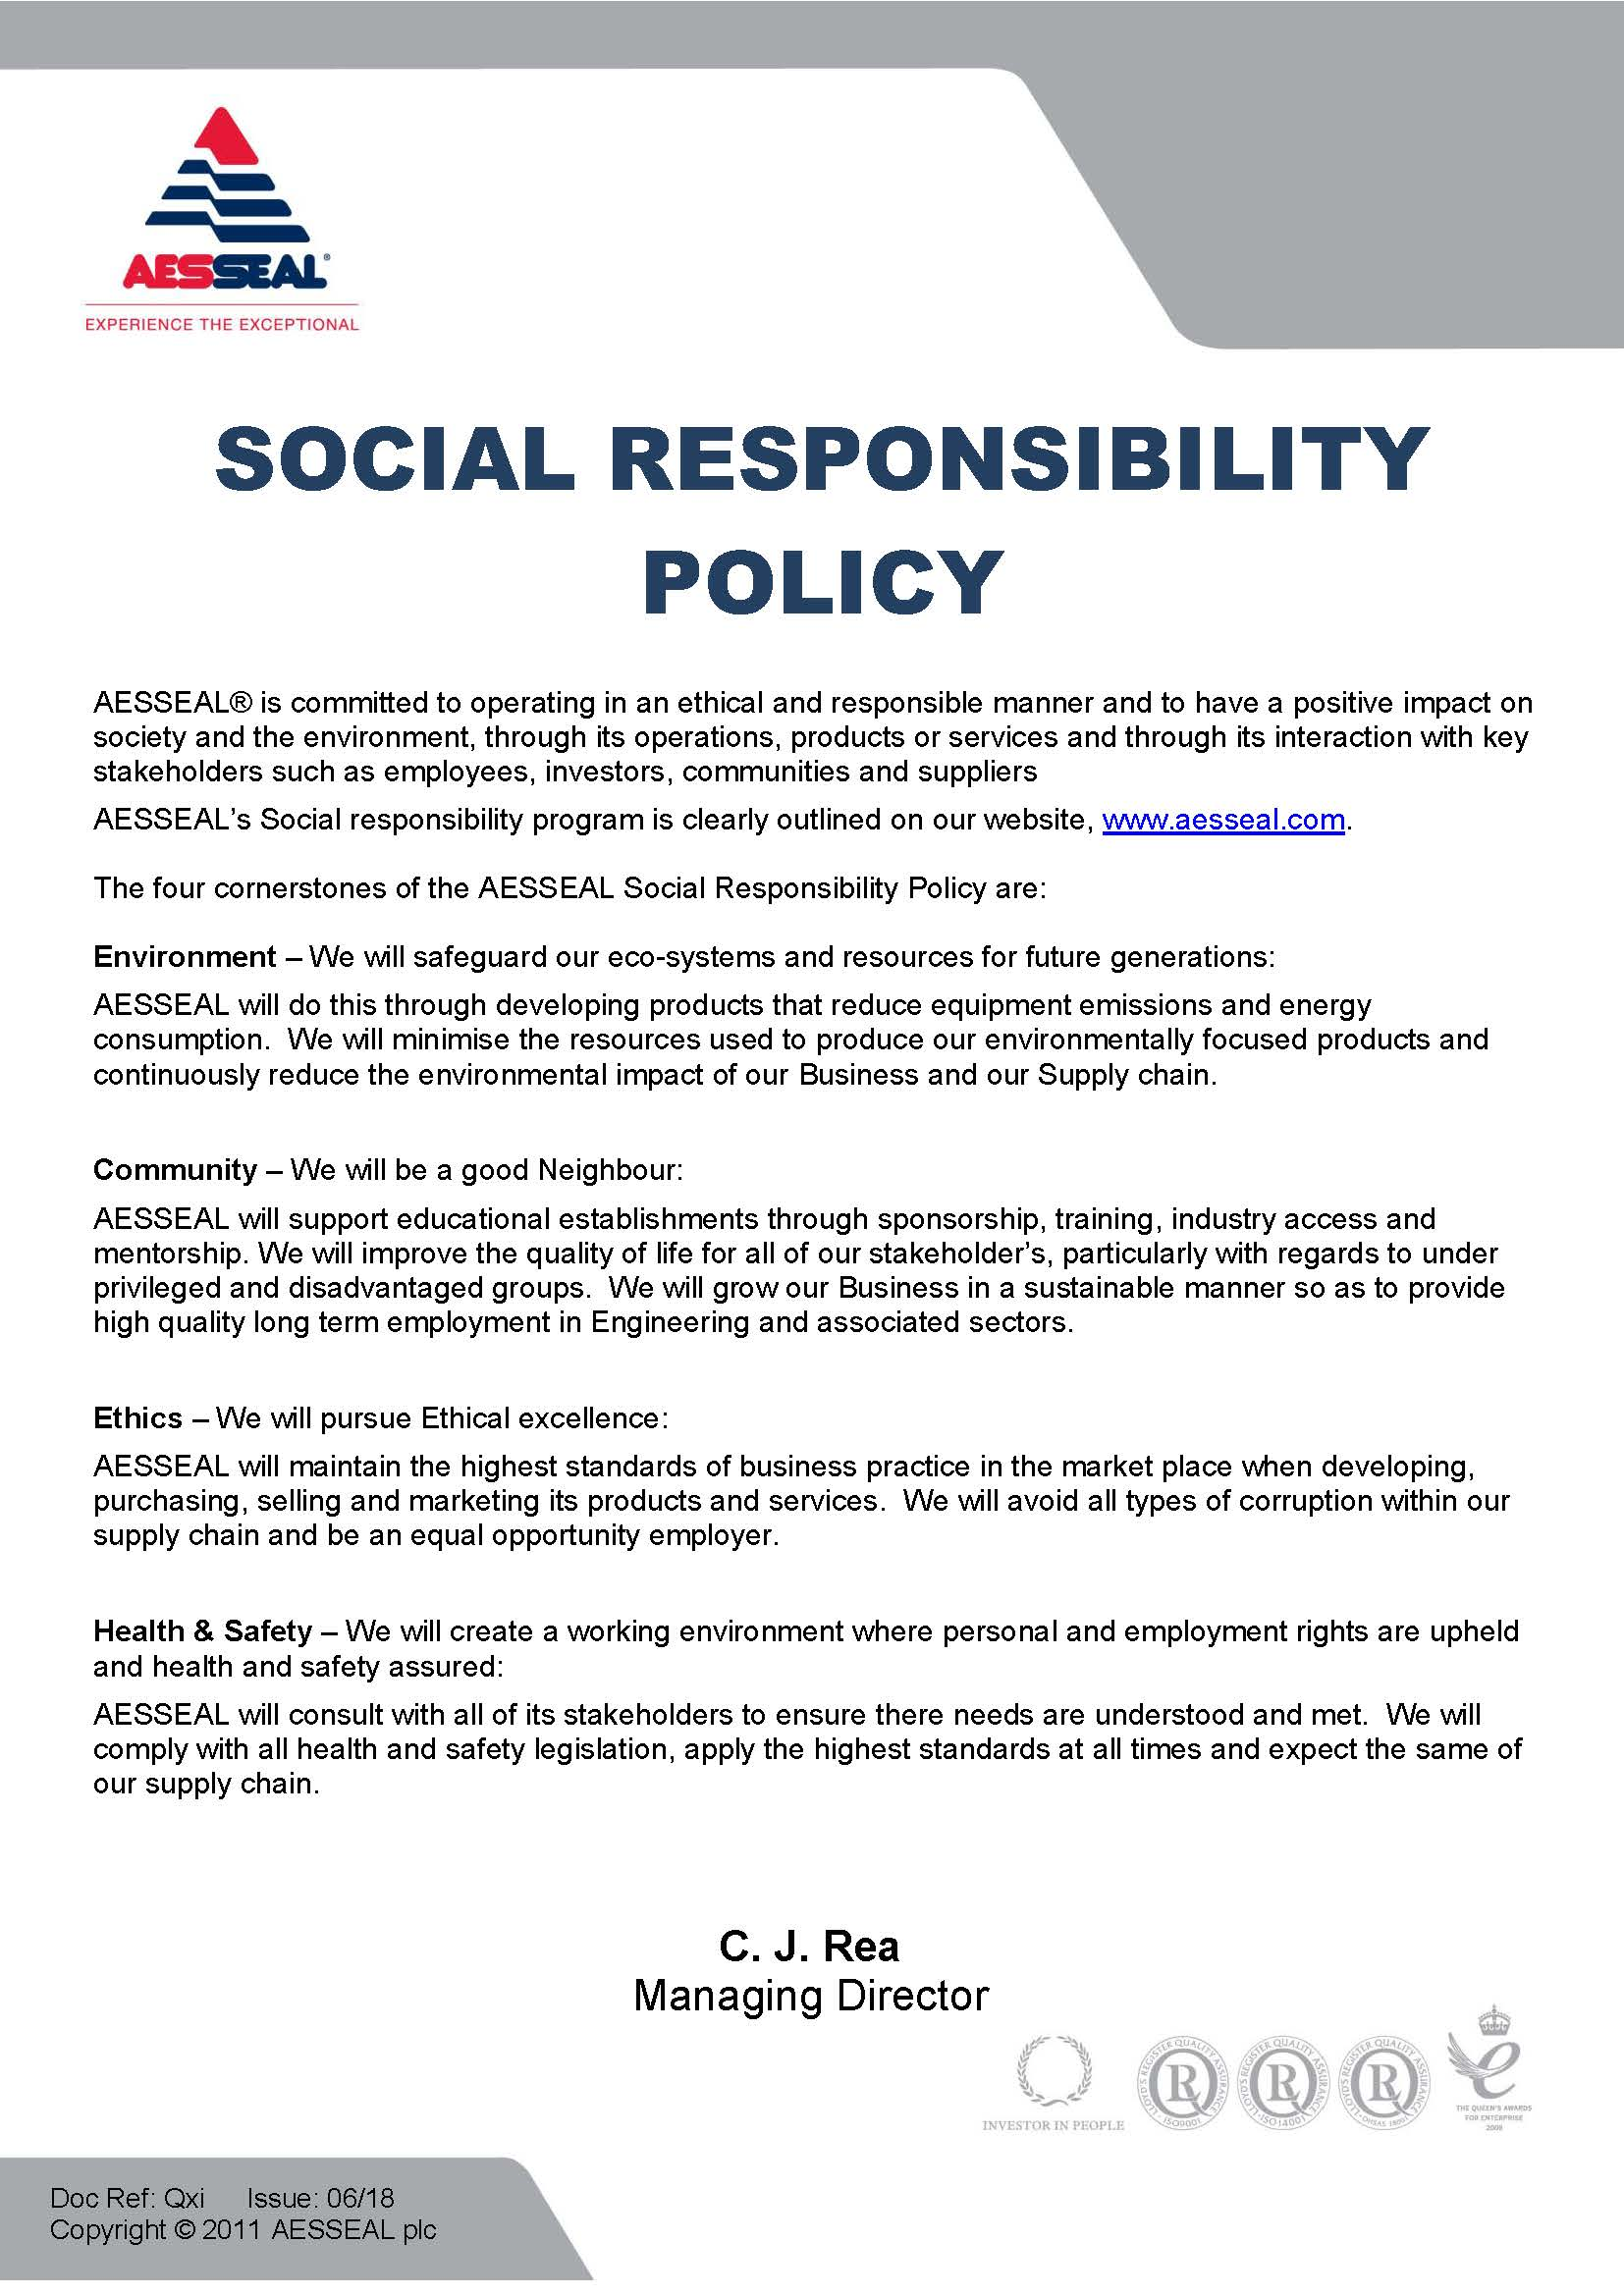 Social Responsibility Policy